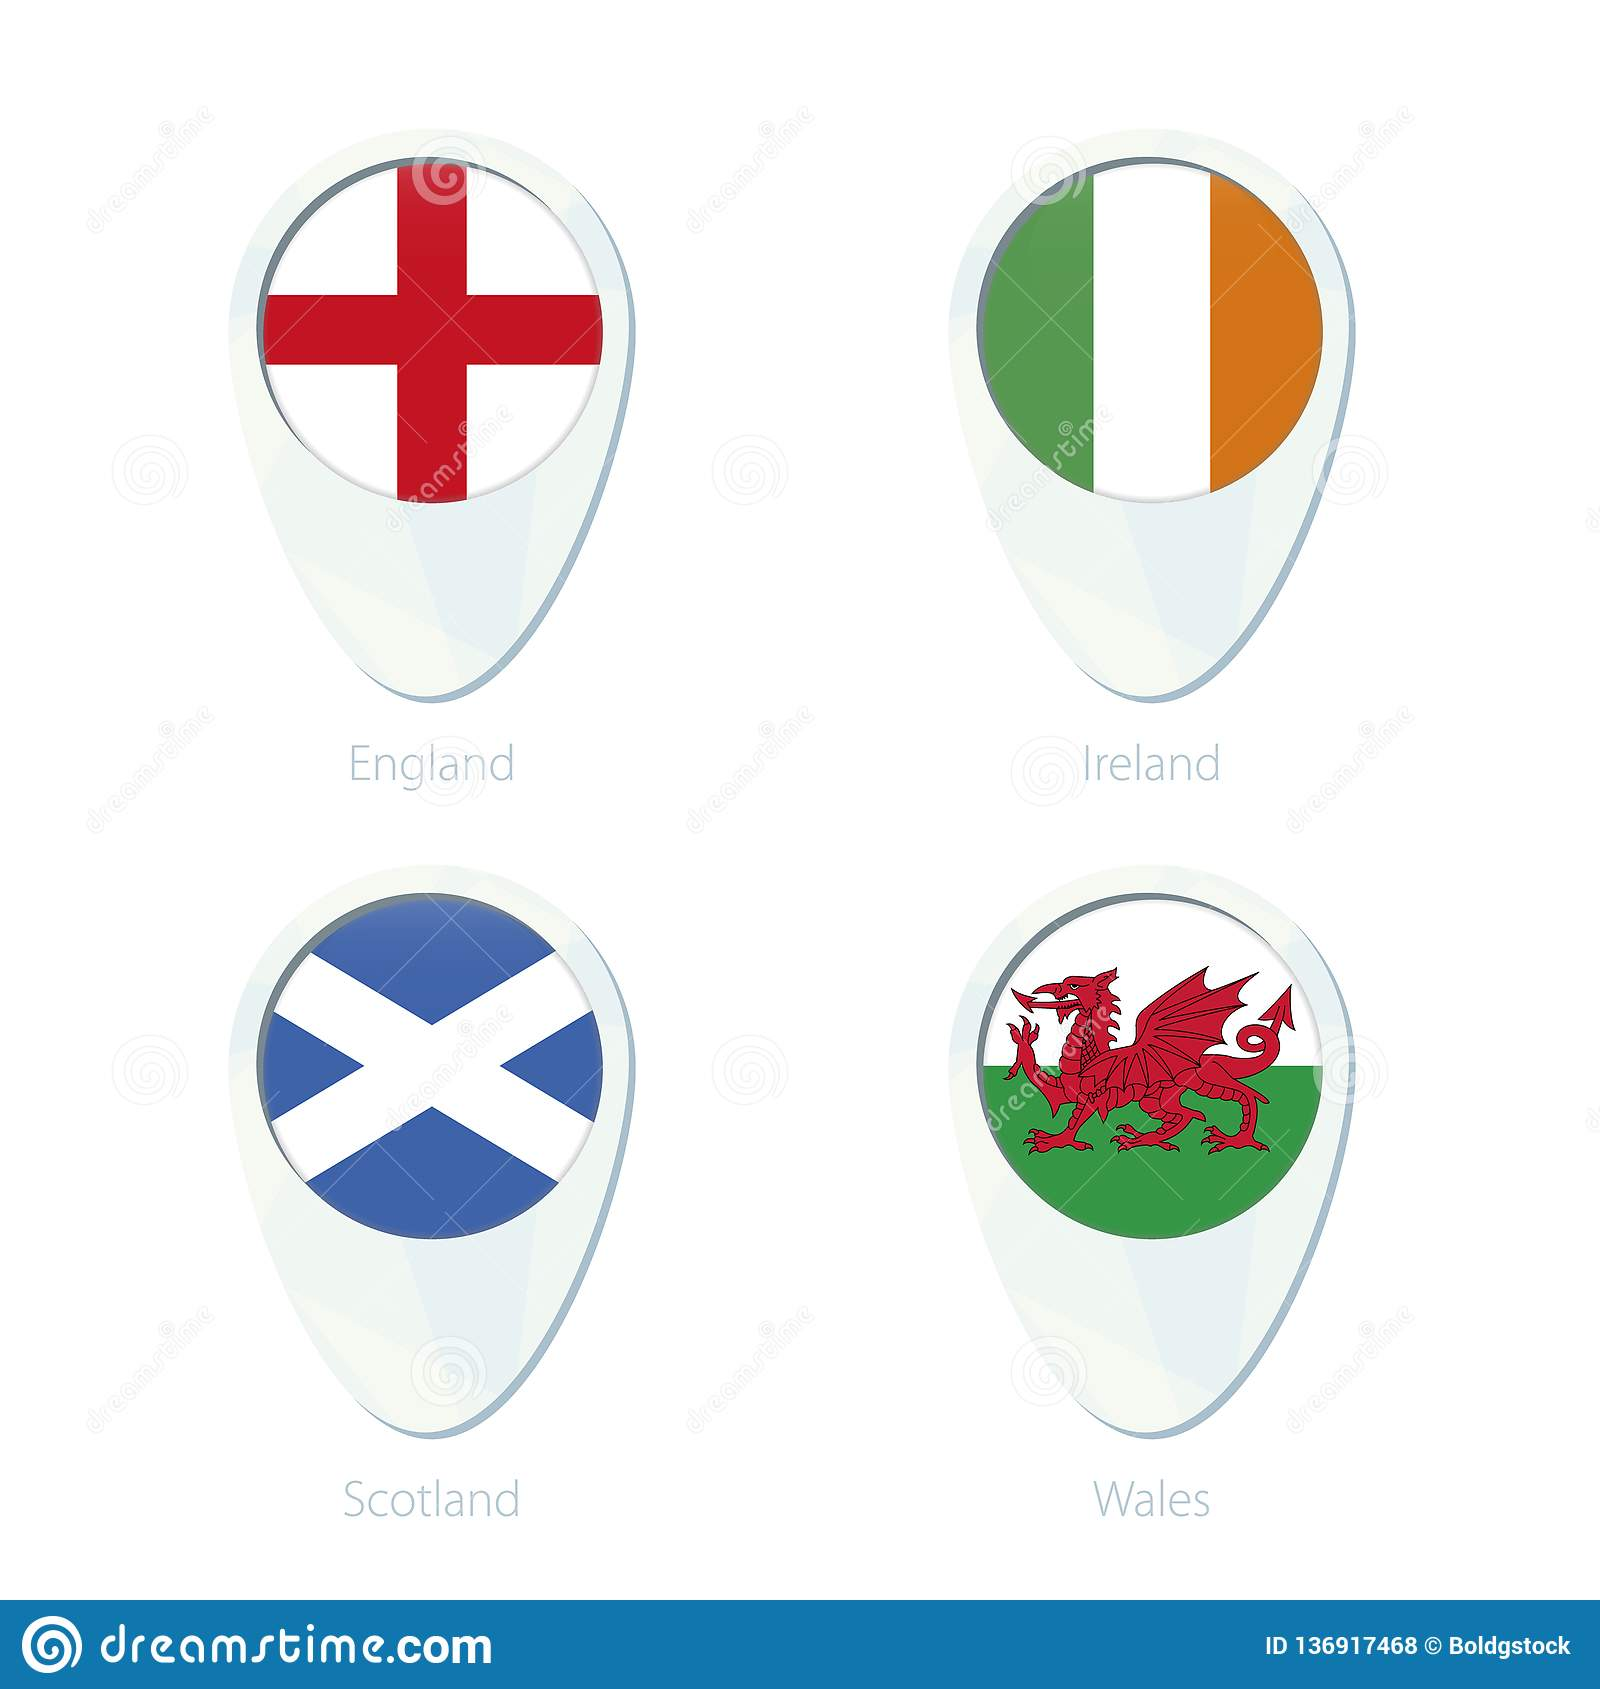 Map Of England Ireland Scotland Wales.England Ireland Scotland Wales Flag Location Map Pin Icon Stock